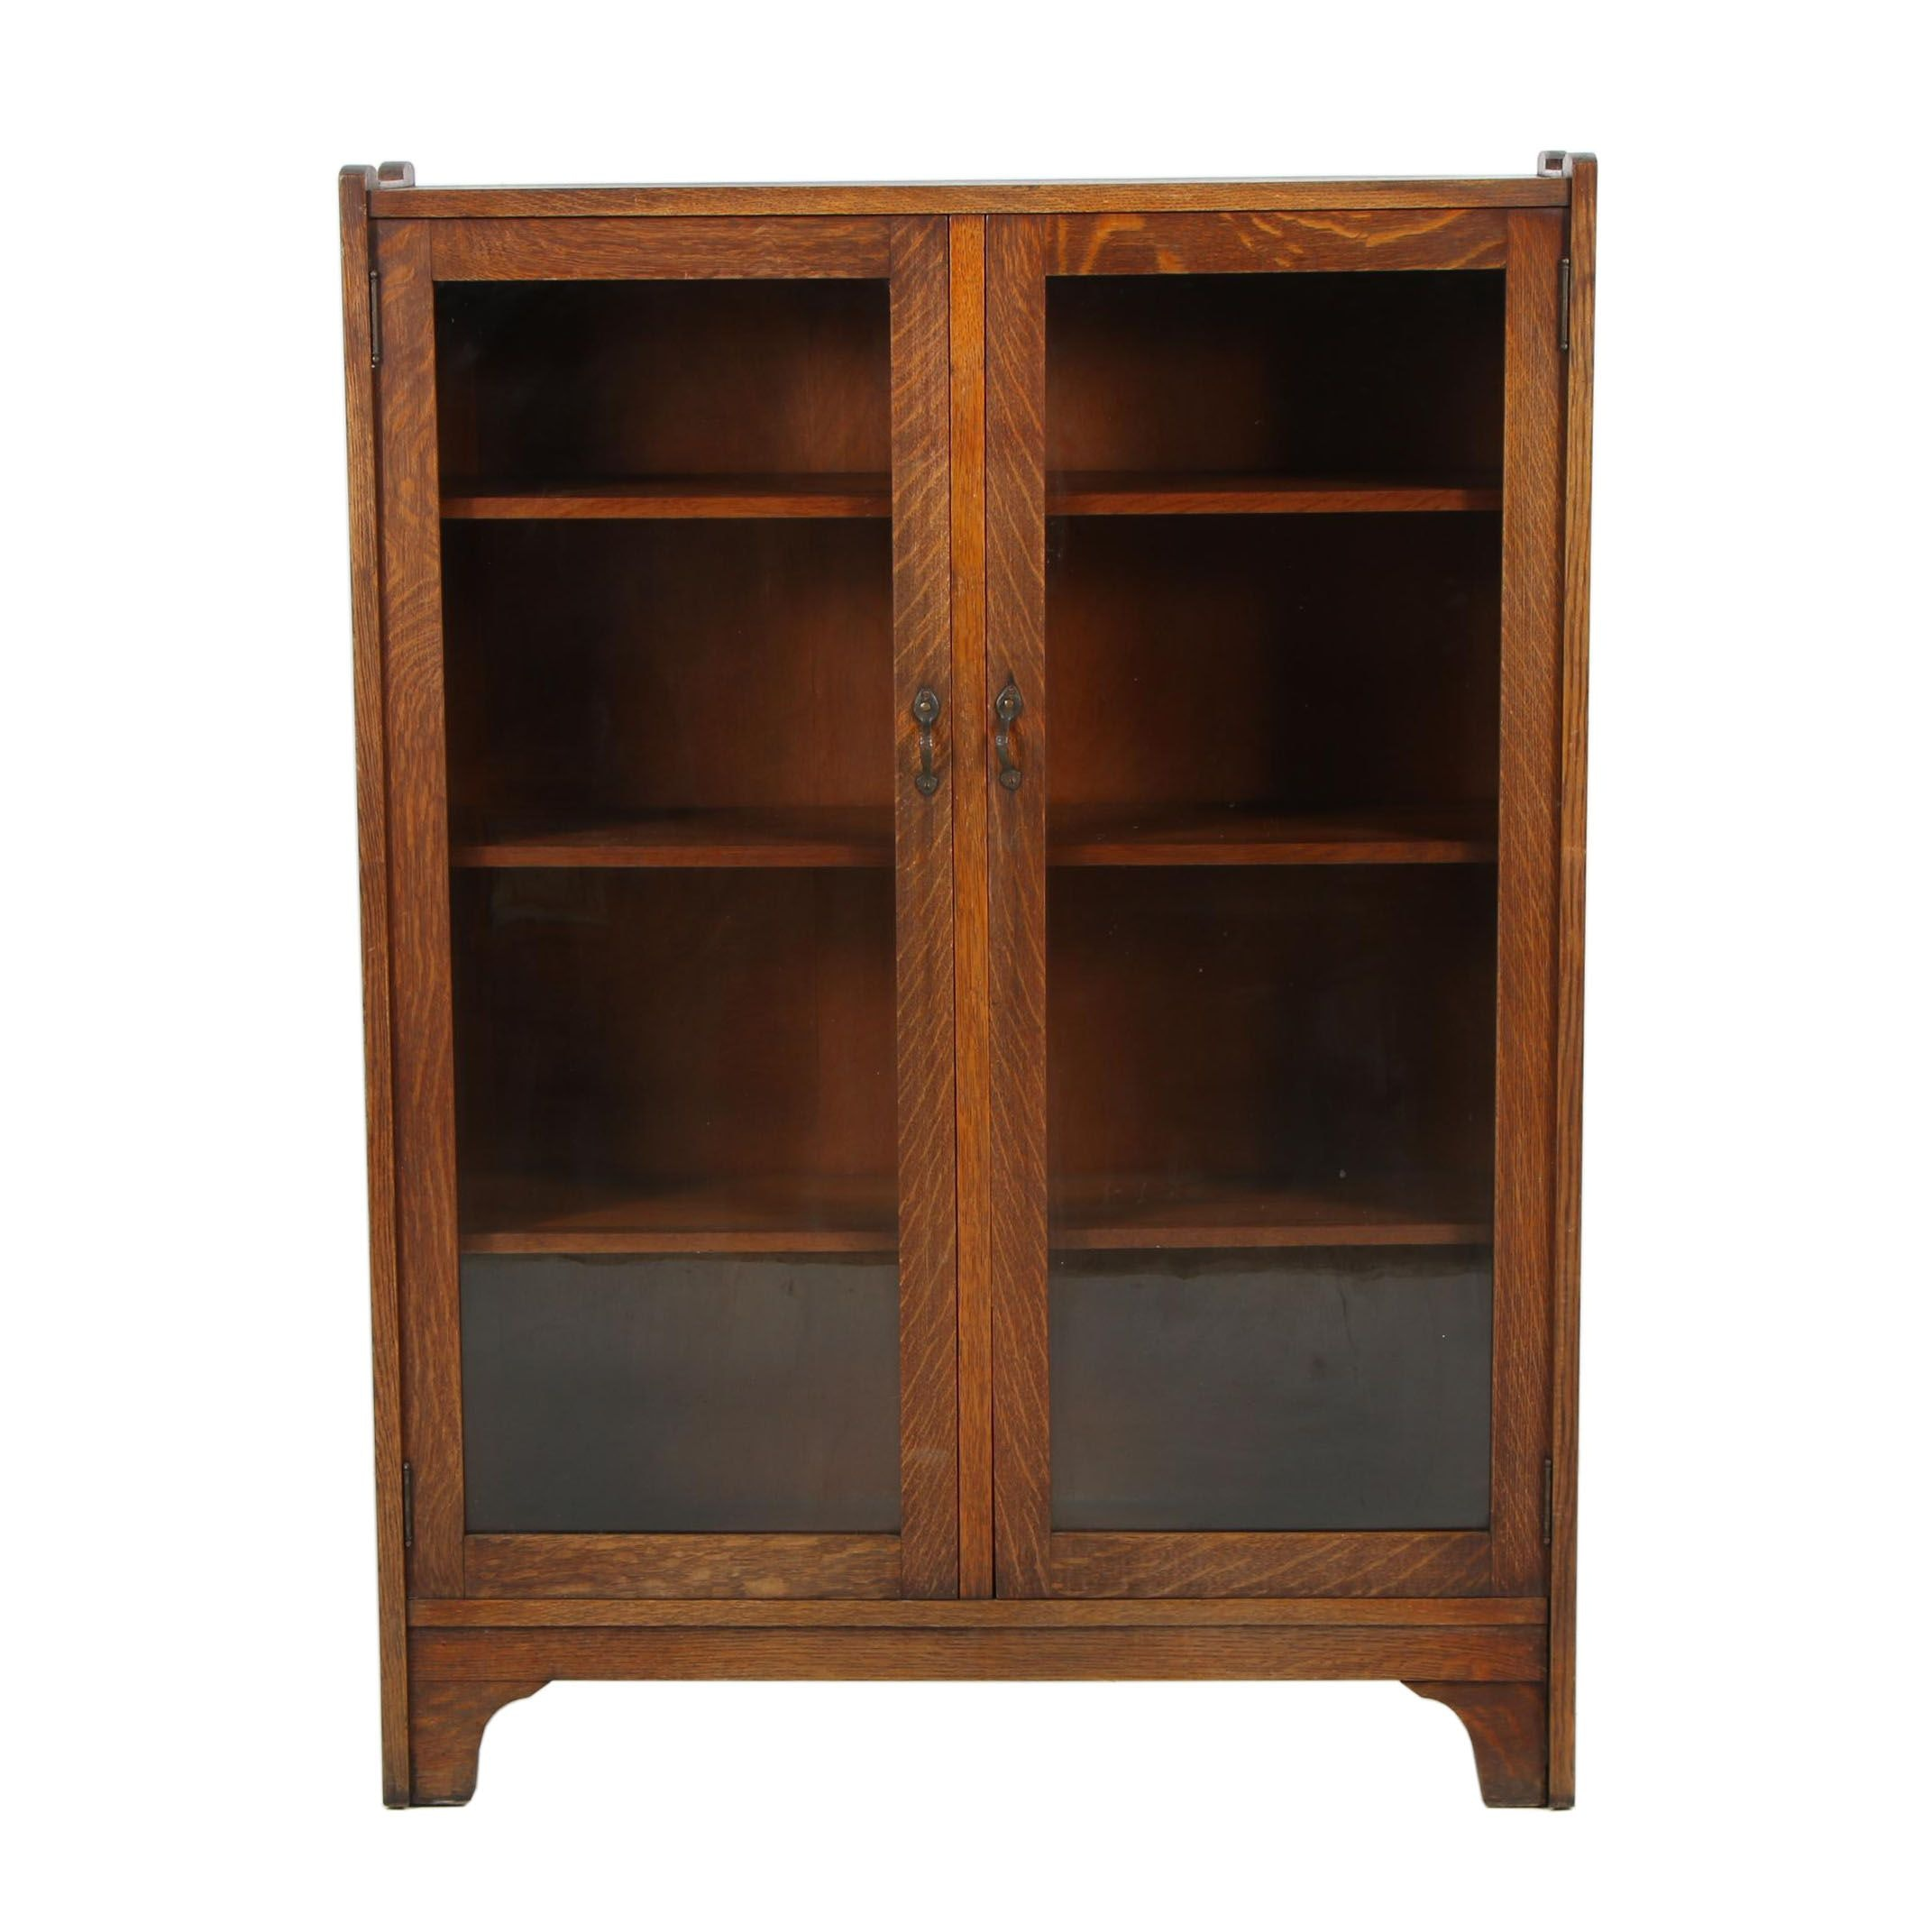 Stickley Bros Co. Display Cabinet with Glass Doors